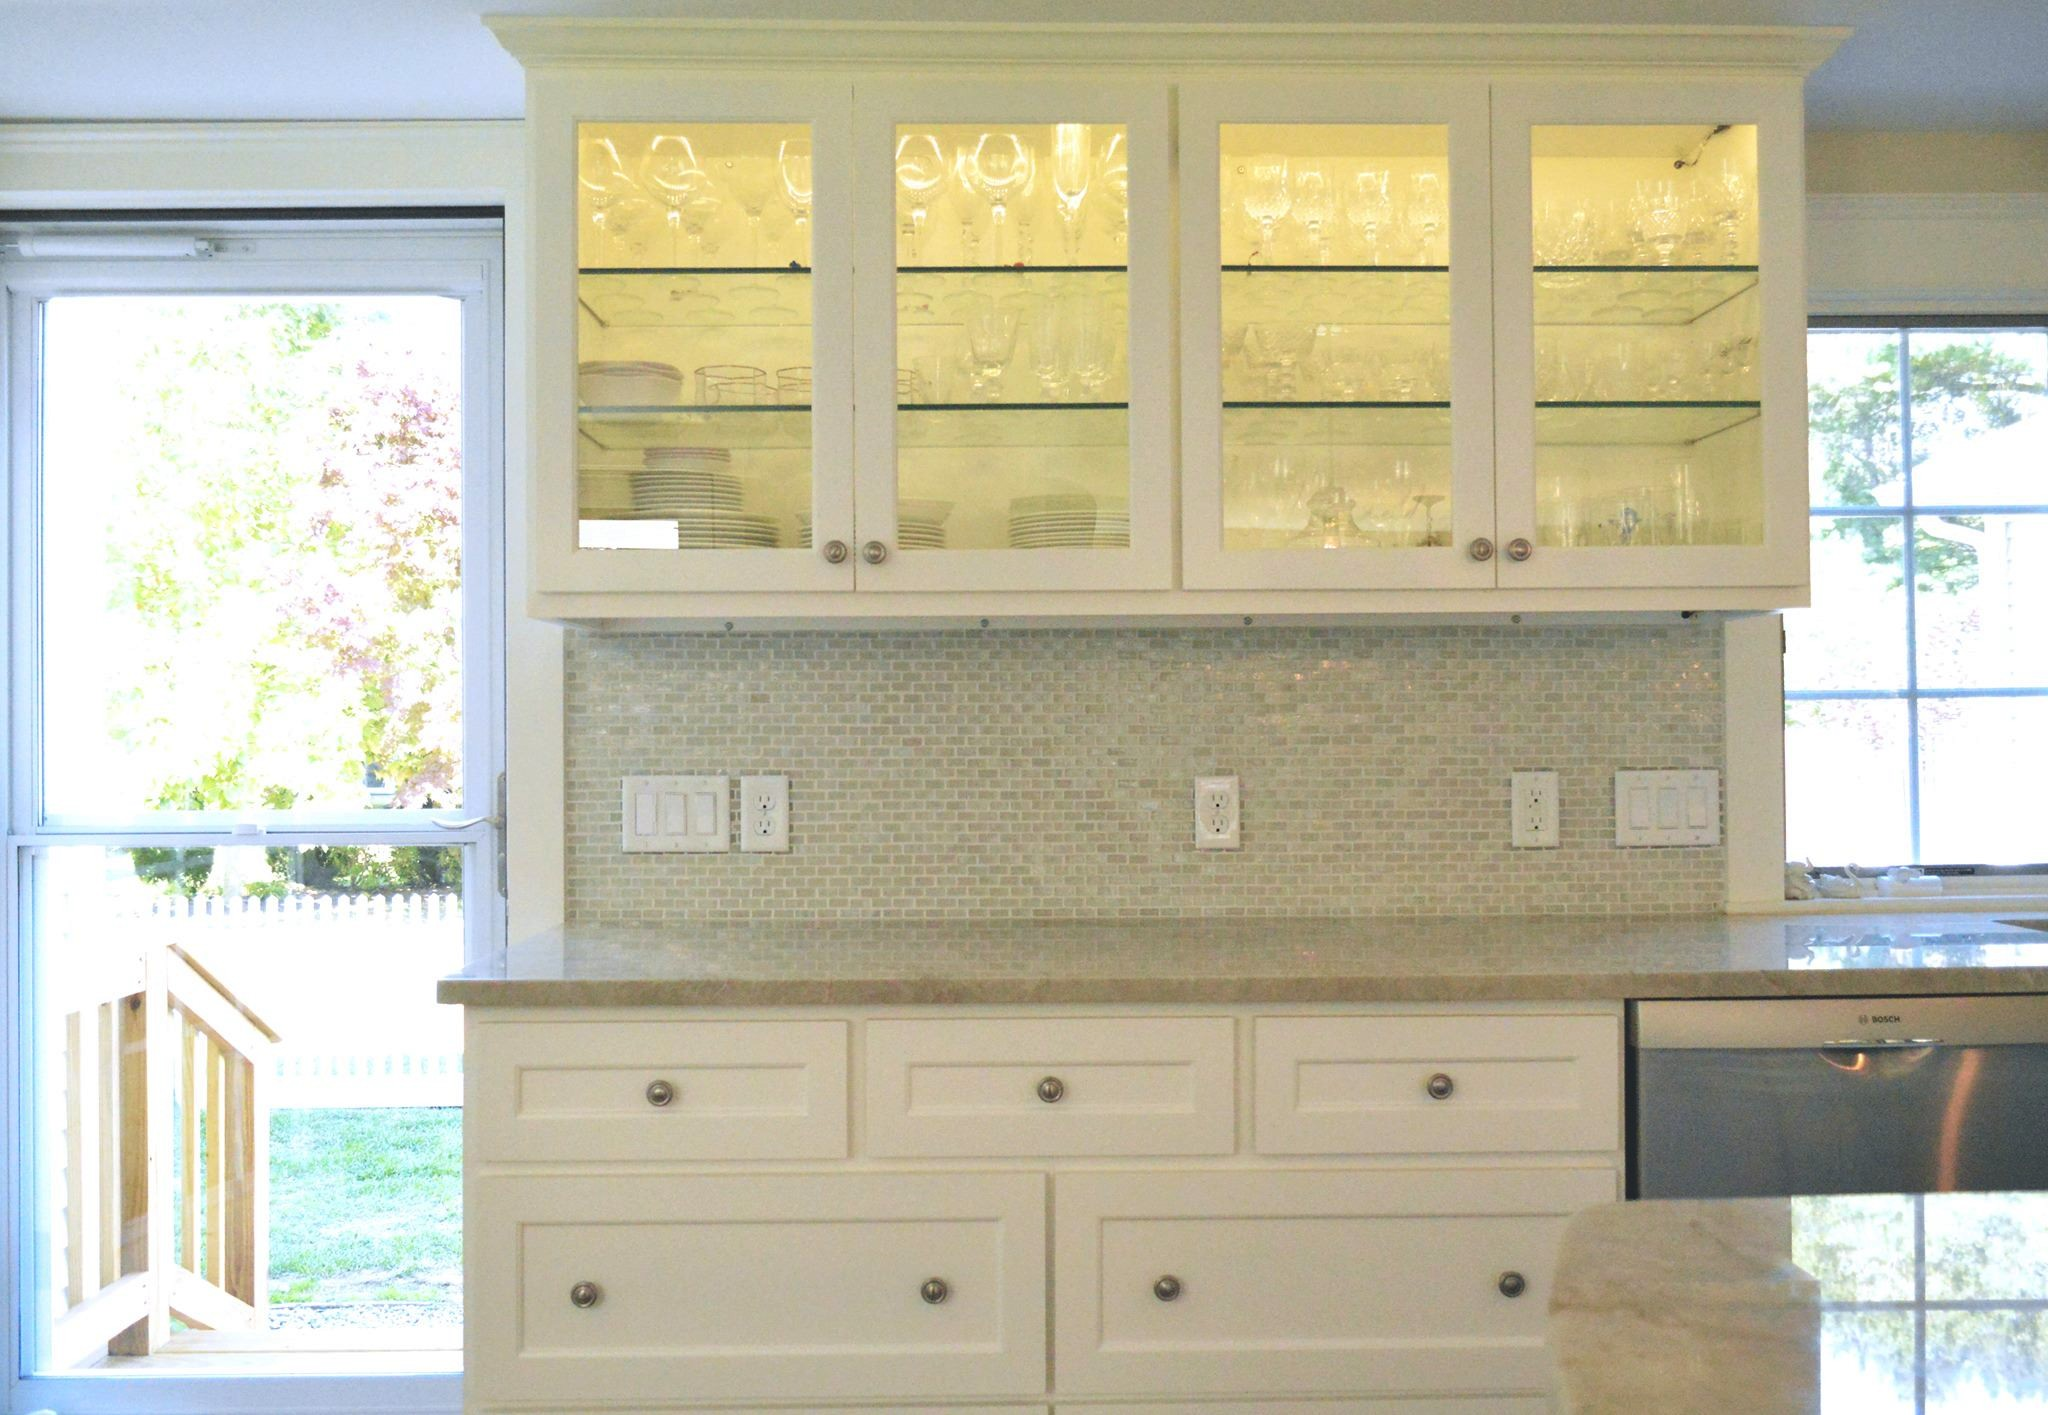 Glass cabinets with interior lighting showcase the client's stemware collection.jpg